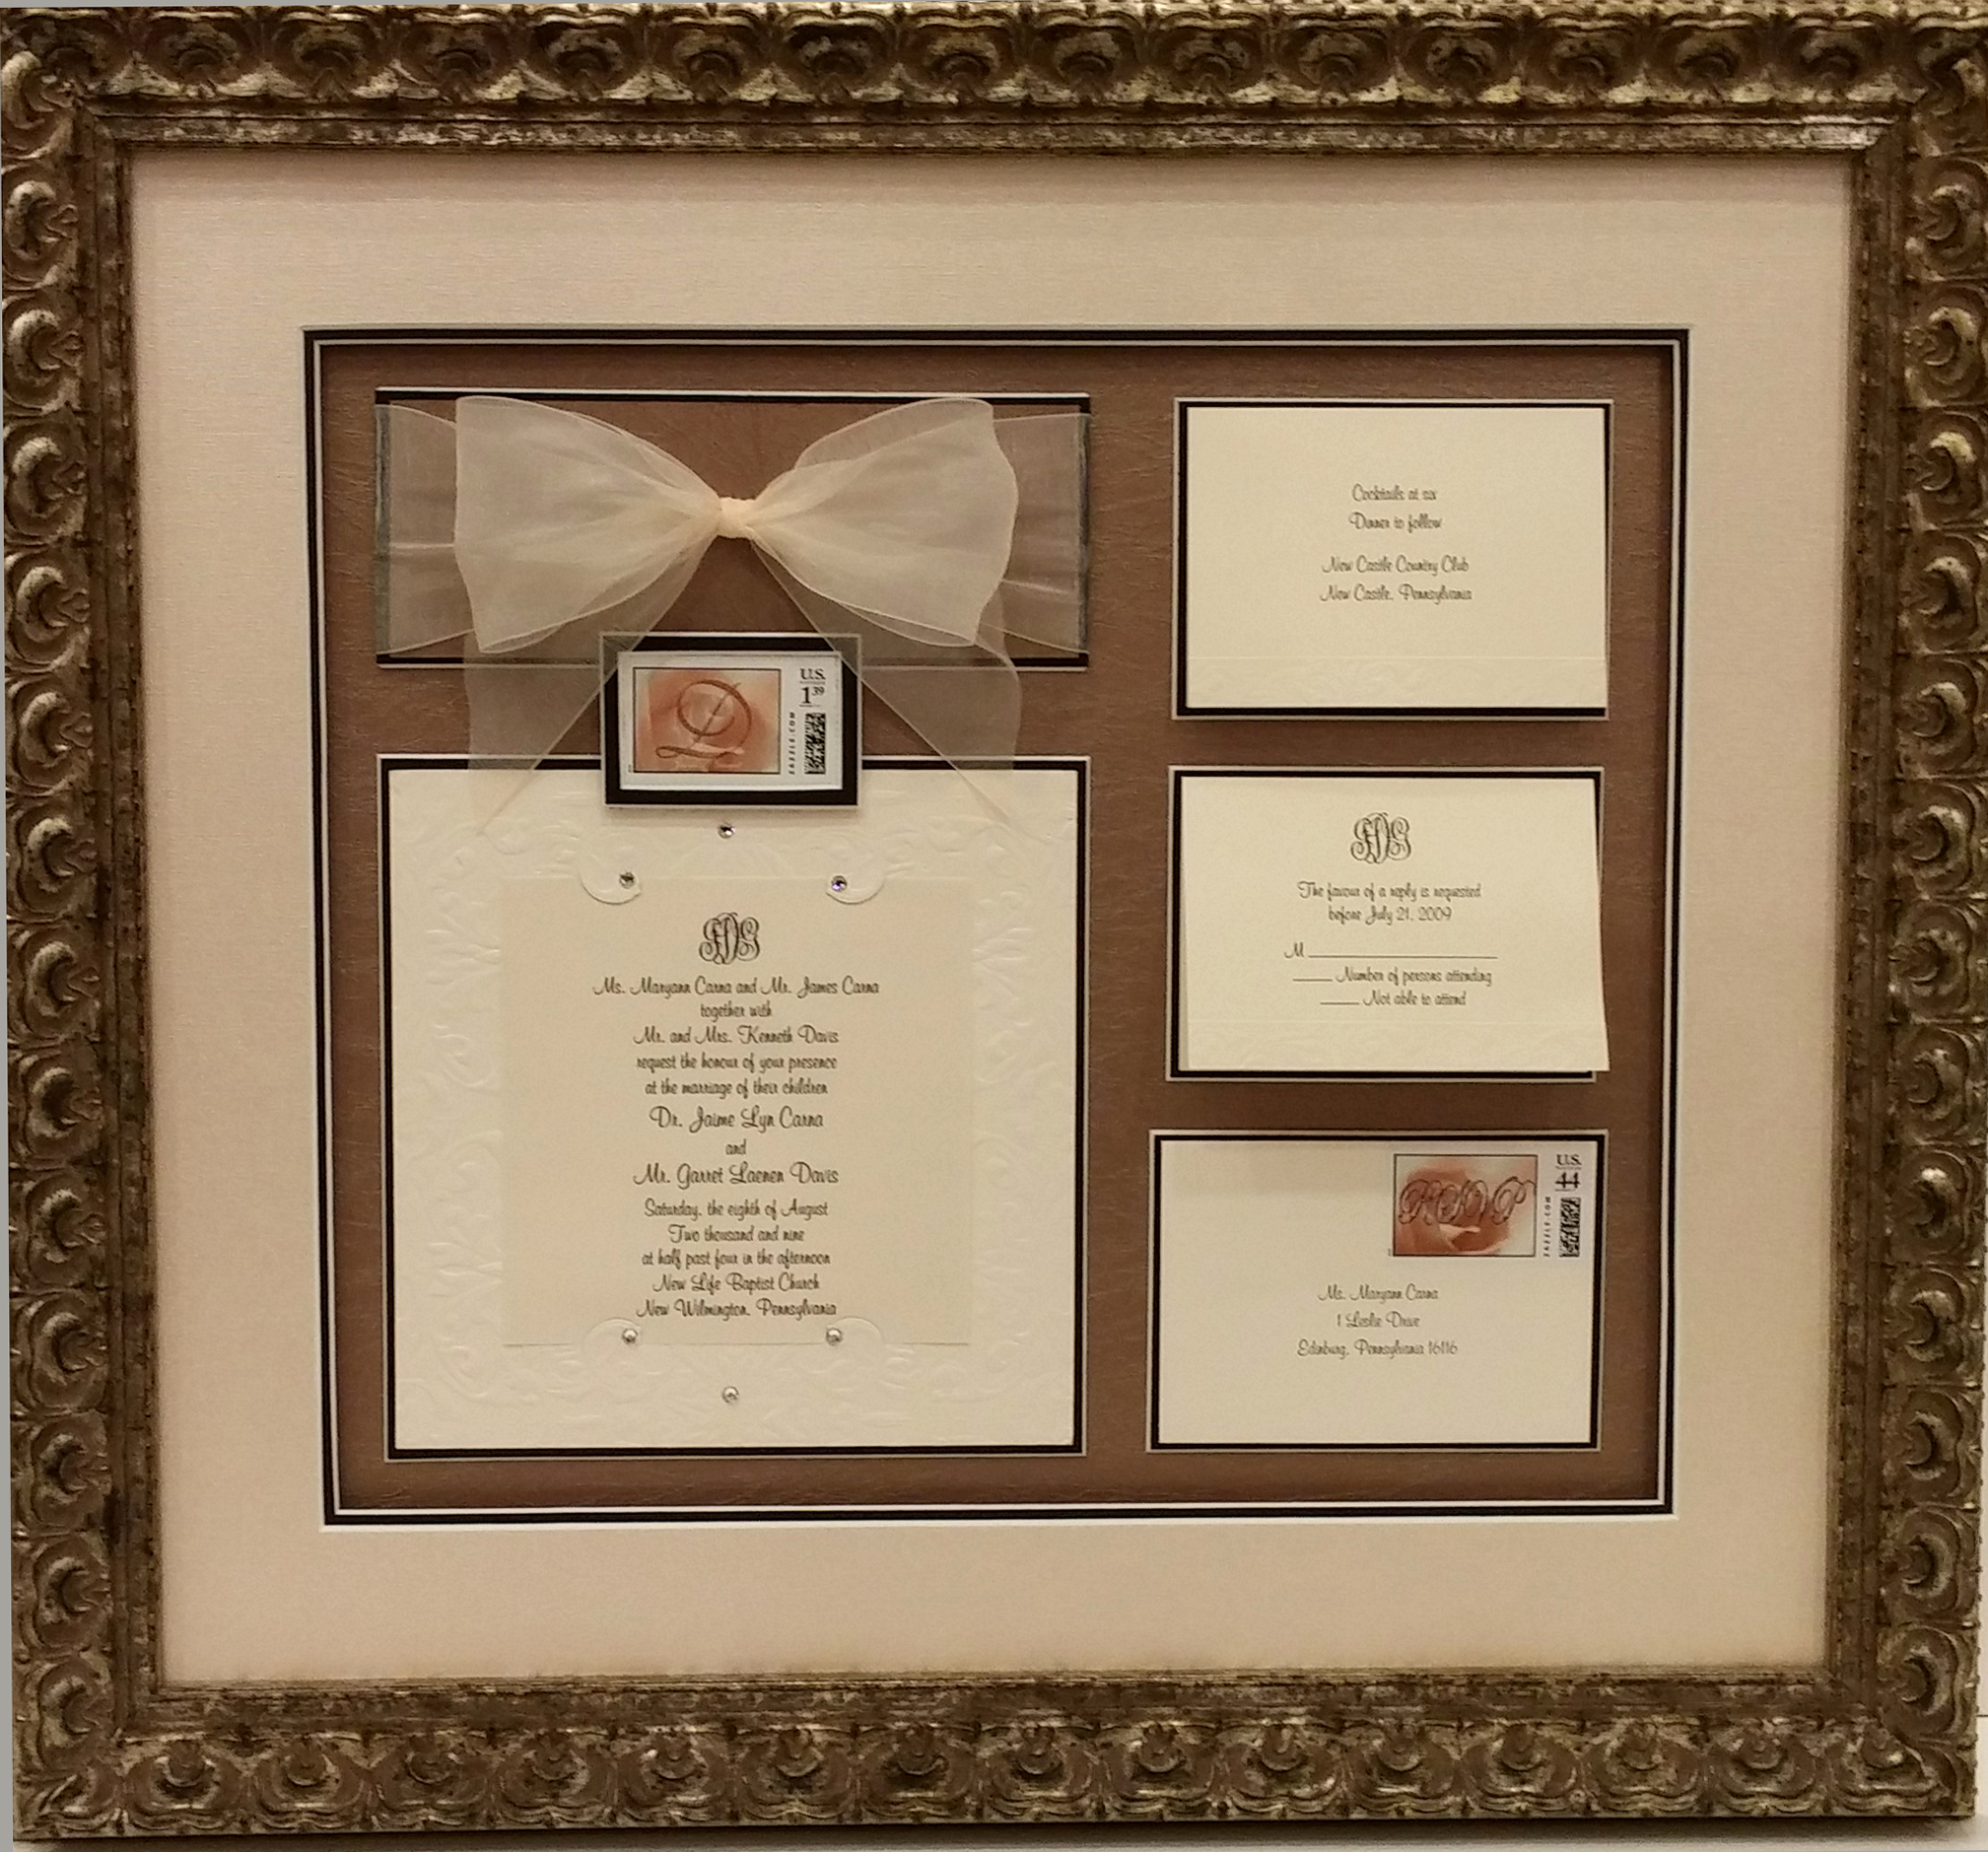 Wedding Invitation Framing Ideas Luxury Framing Examples